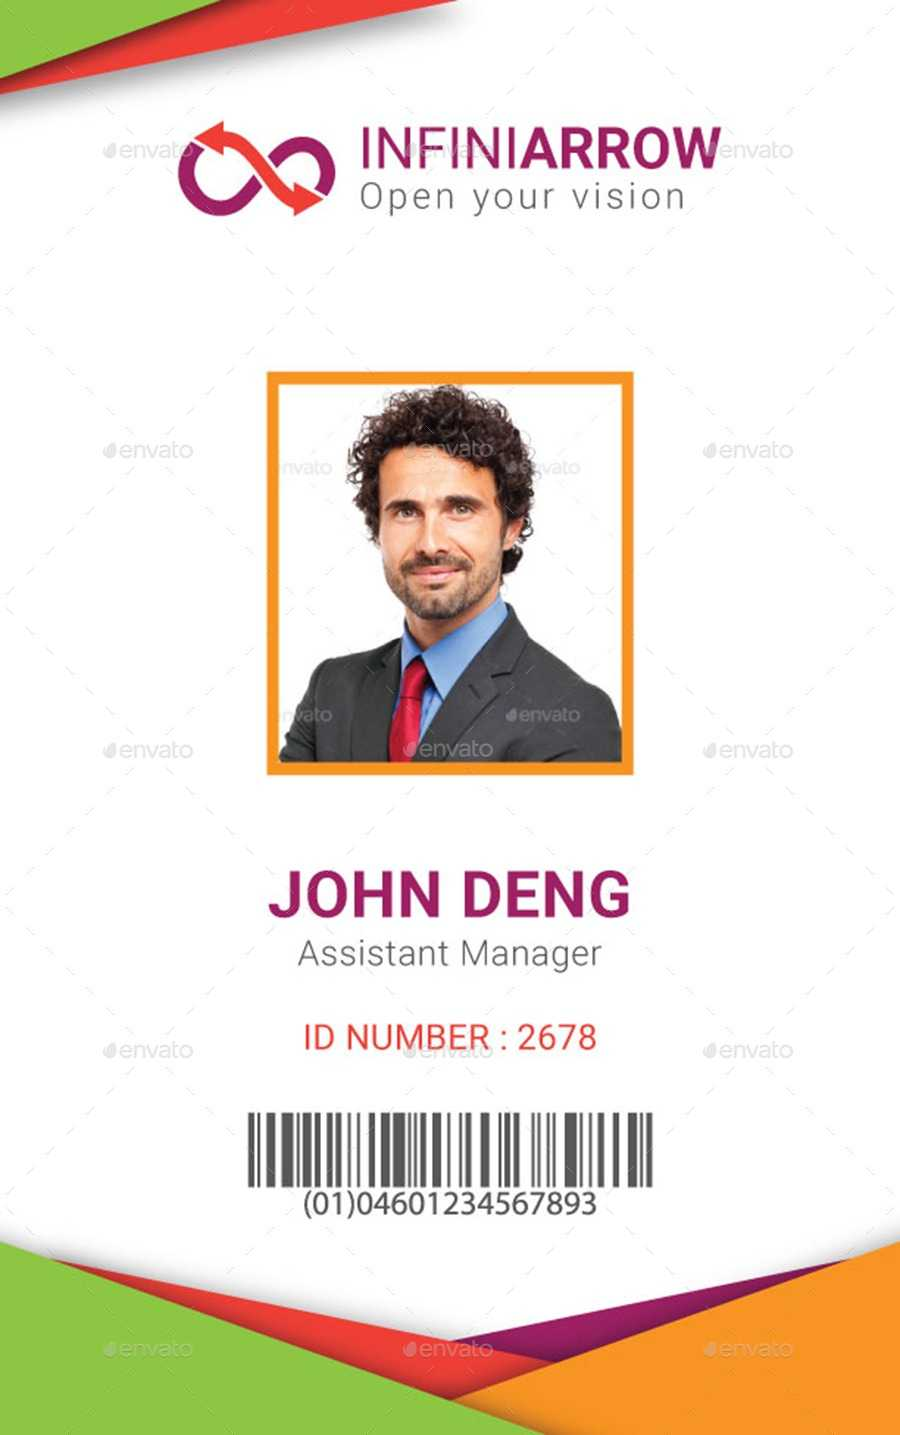 Multipurpose Business Id Card Templatedotnpix | Graphicriver With Sample Of Id Card Template